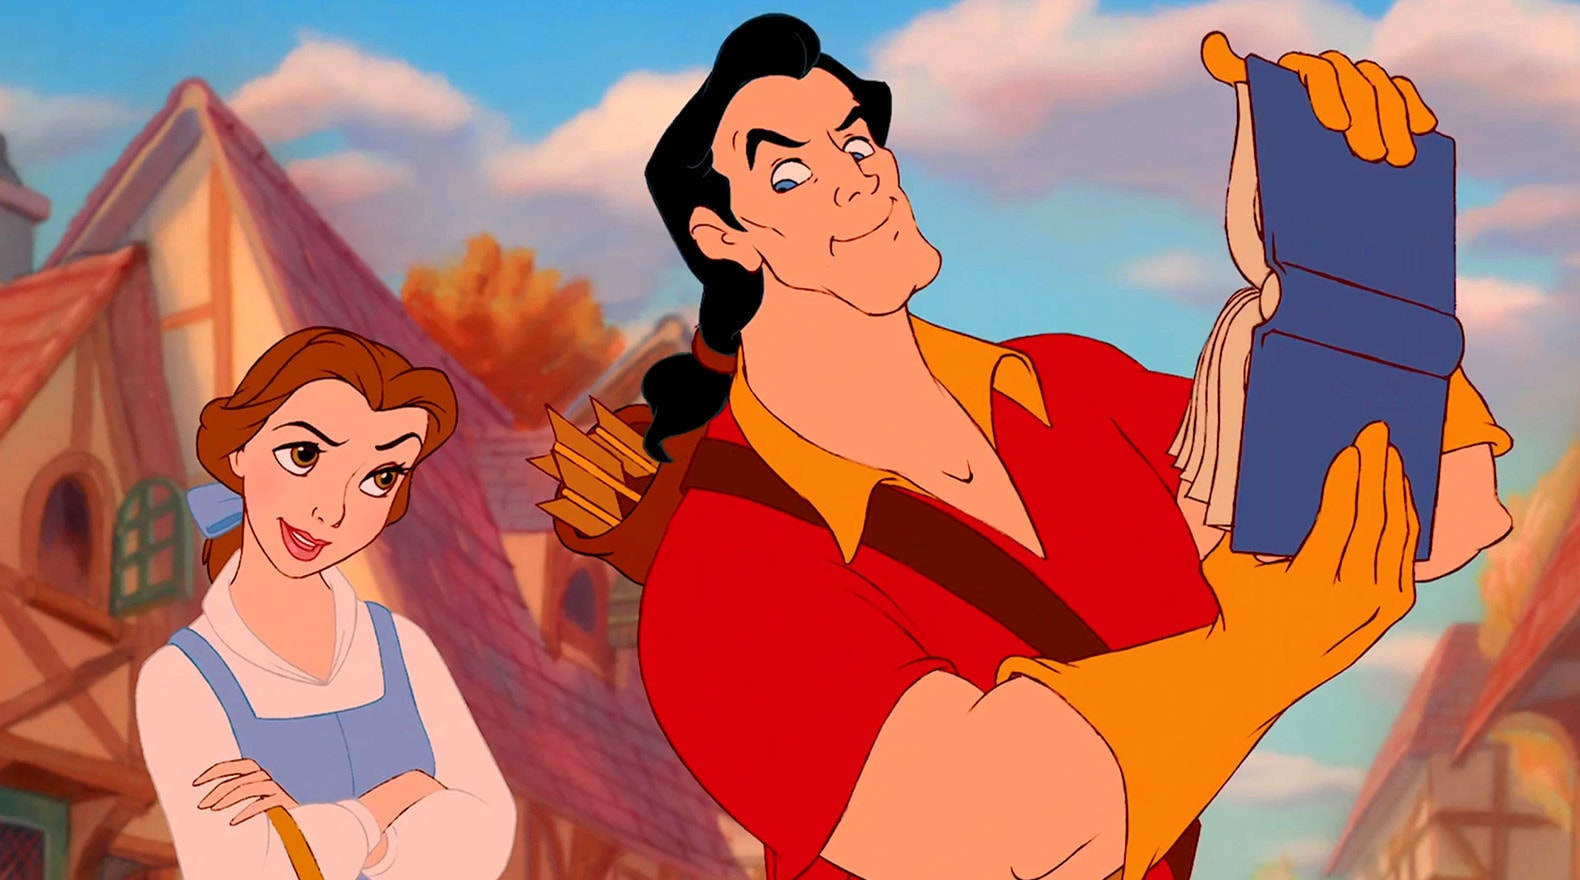 Gaston is looking to woo and marry Belle.